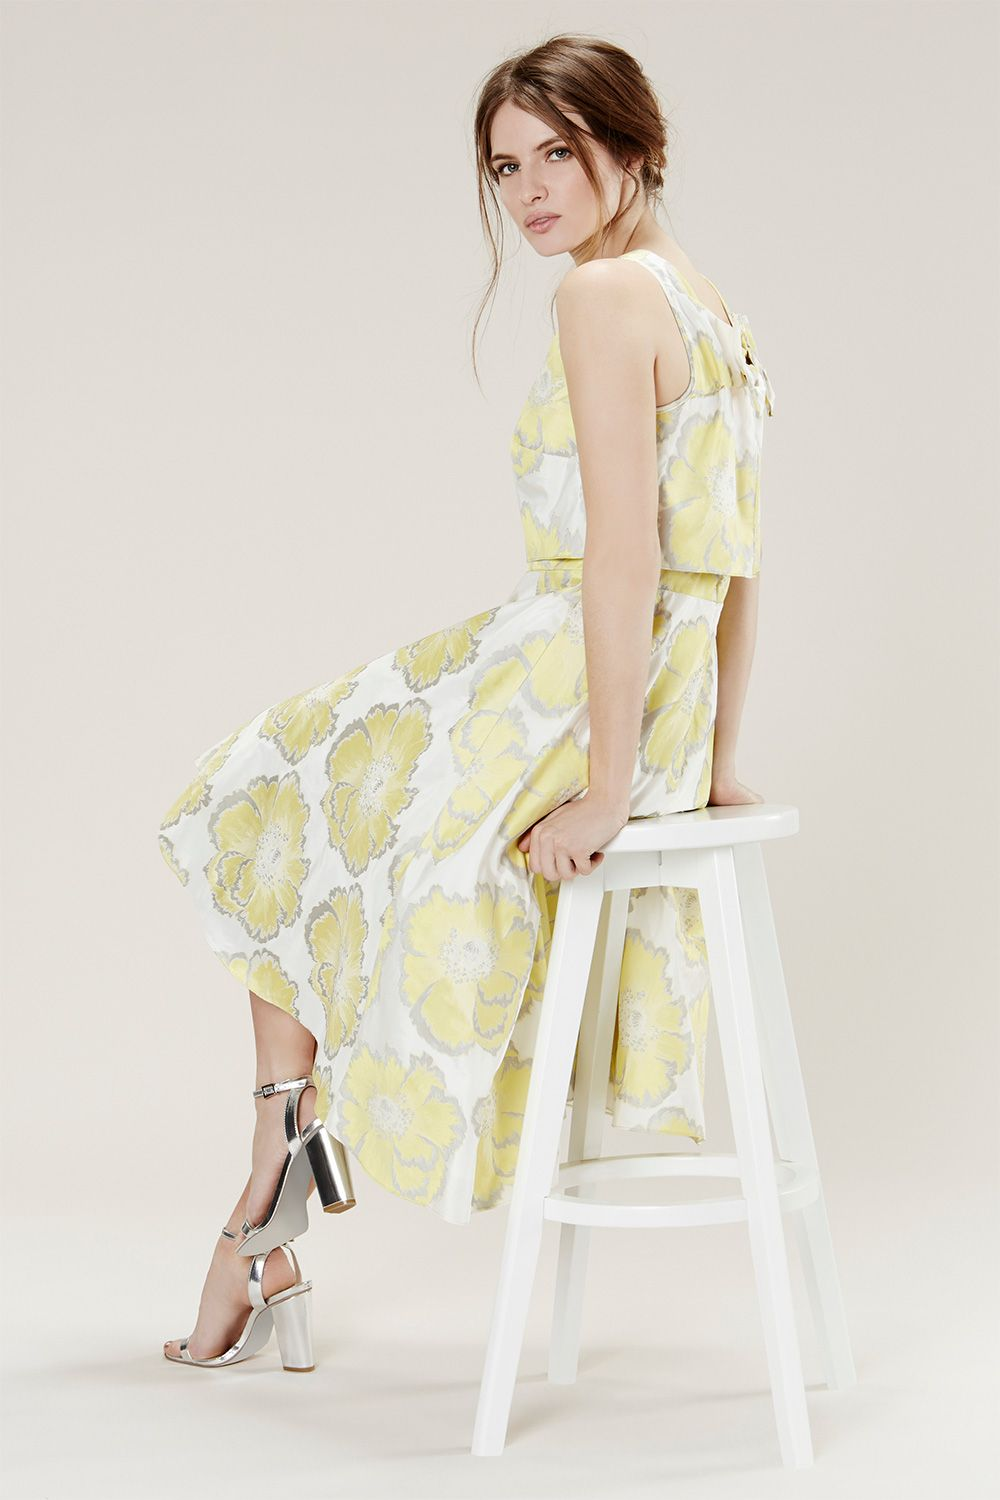 Stunning FLORAL JACQUARD WHISTAN DRESS Wedding guest dresses from the UK high street